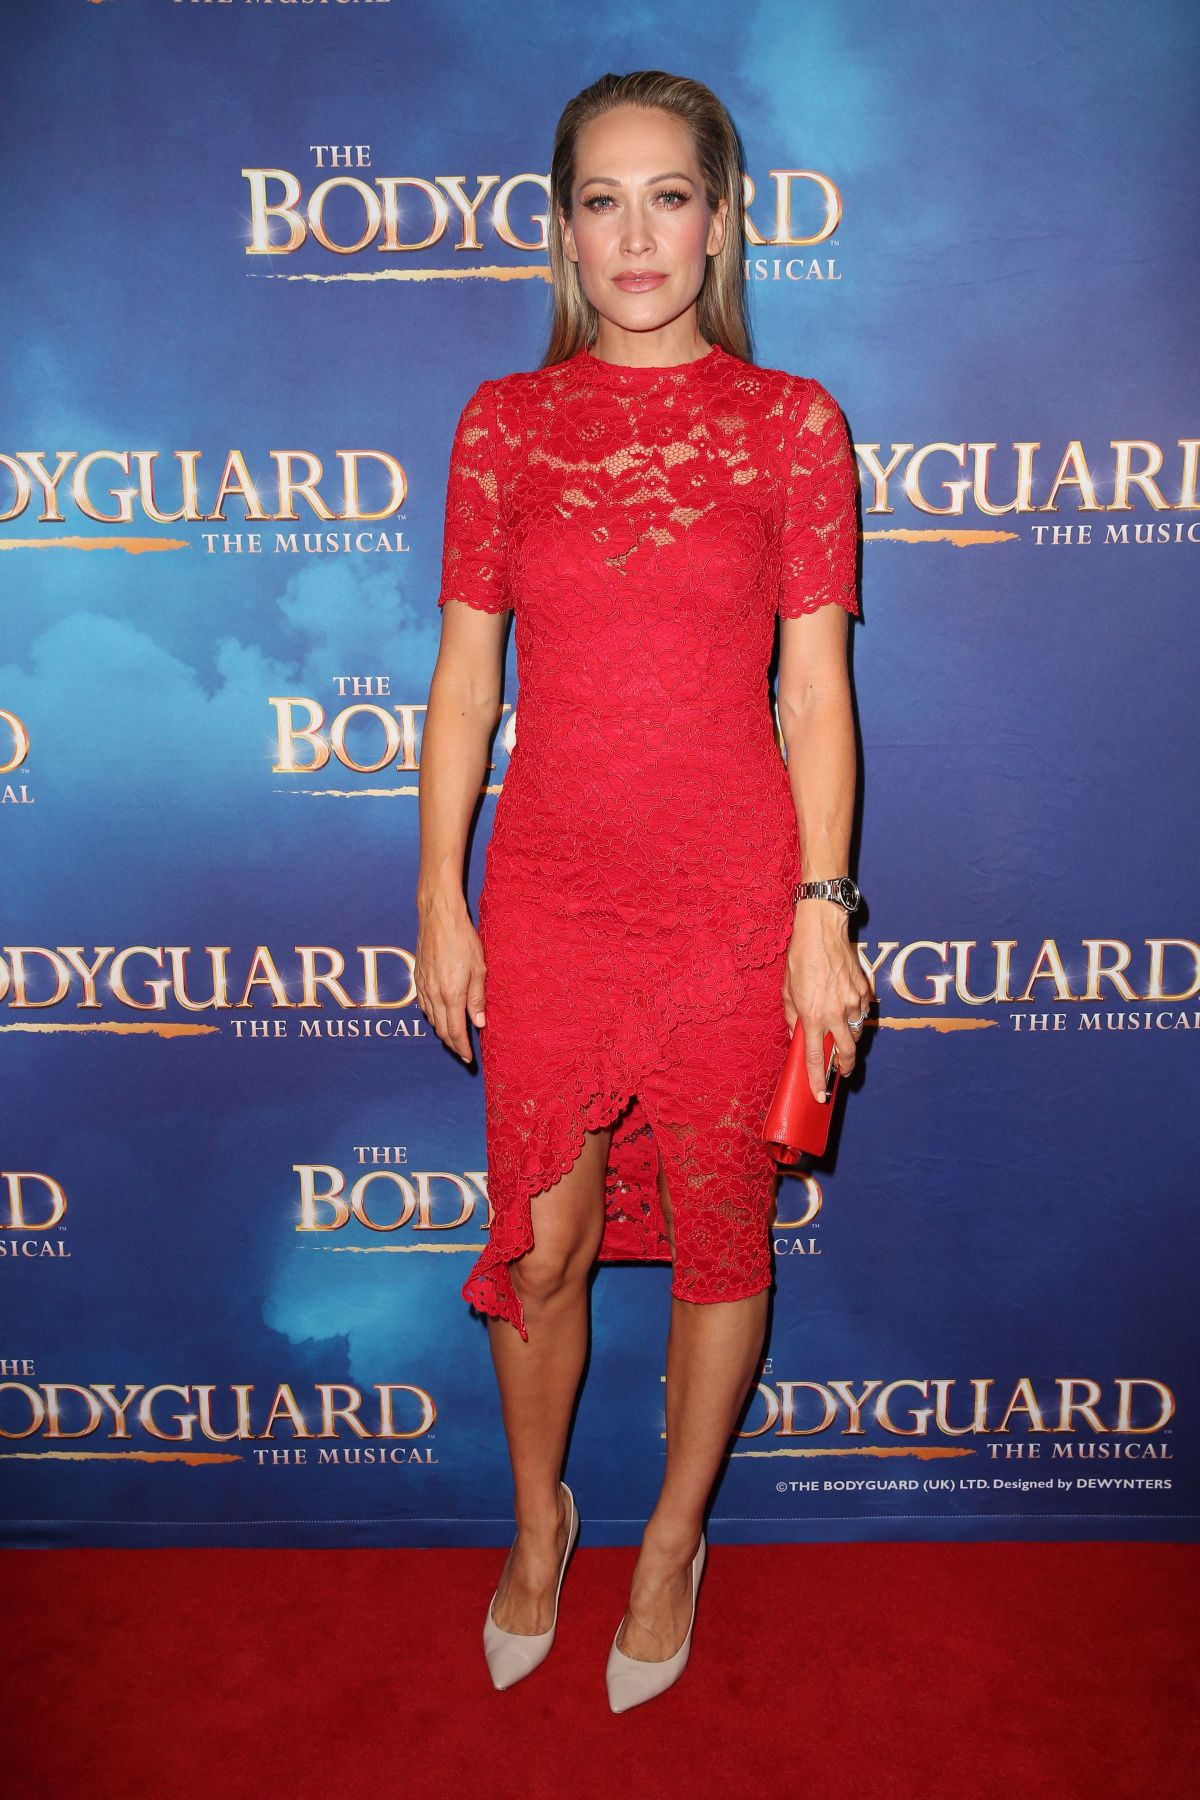 ERIKA HEYNATZ at The Bodyguard Musical Premiere in Sydney 04/27/2017